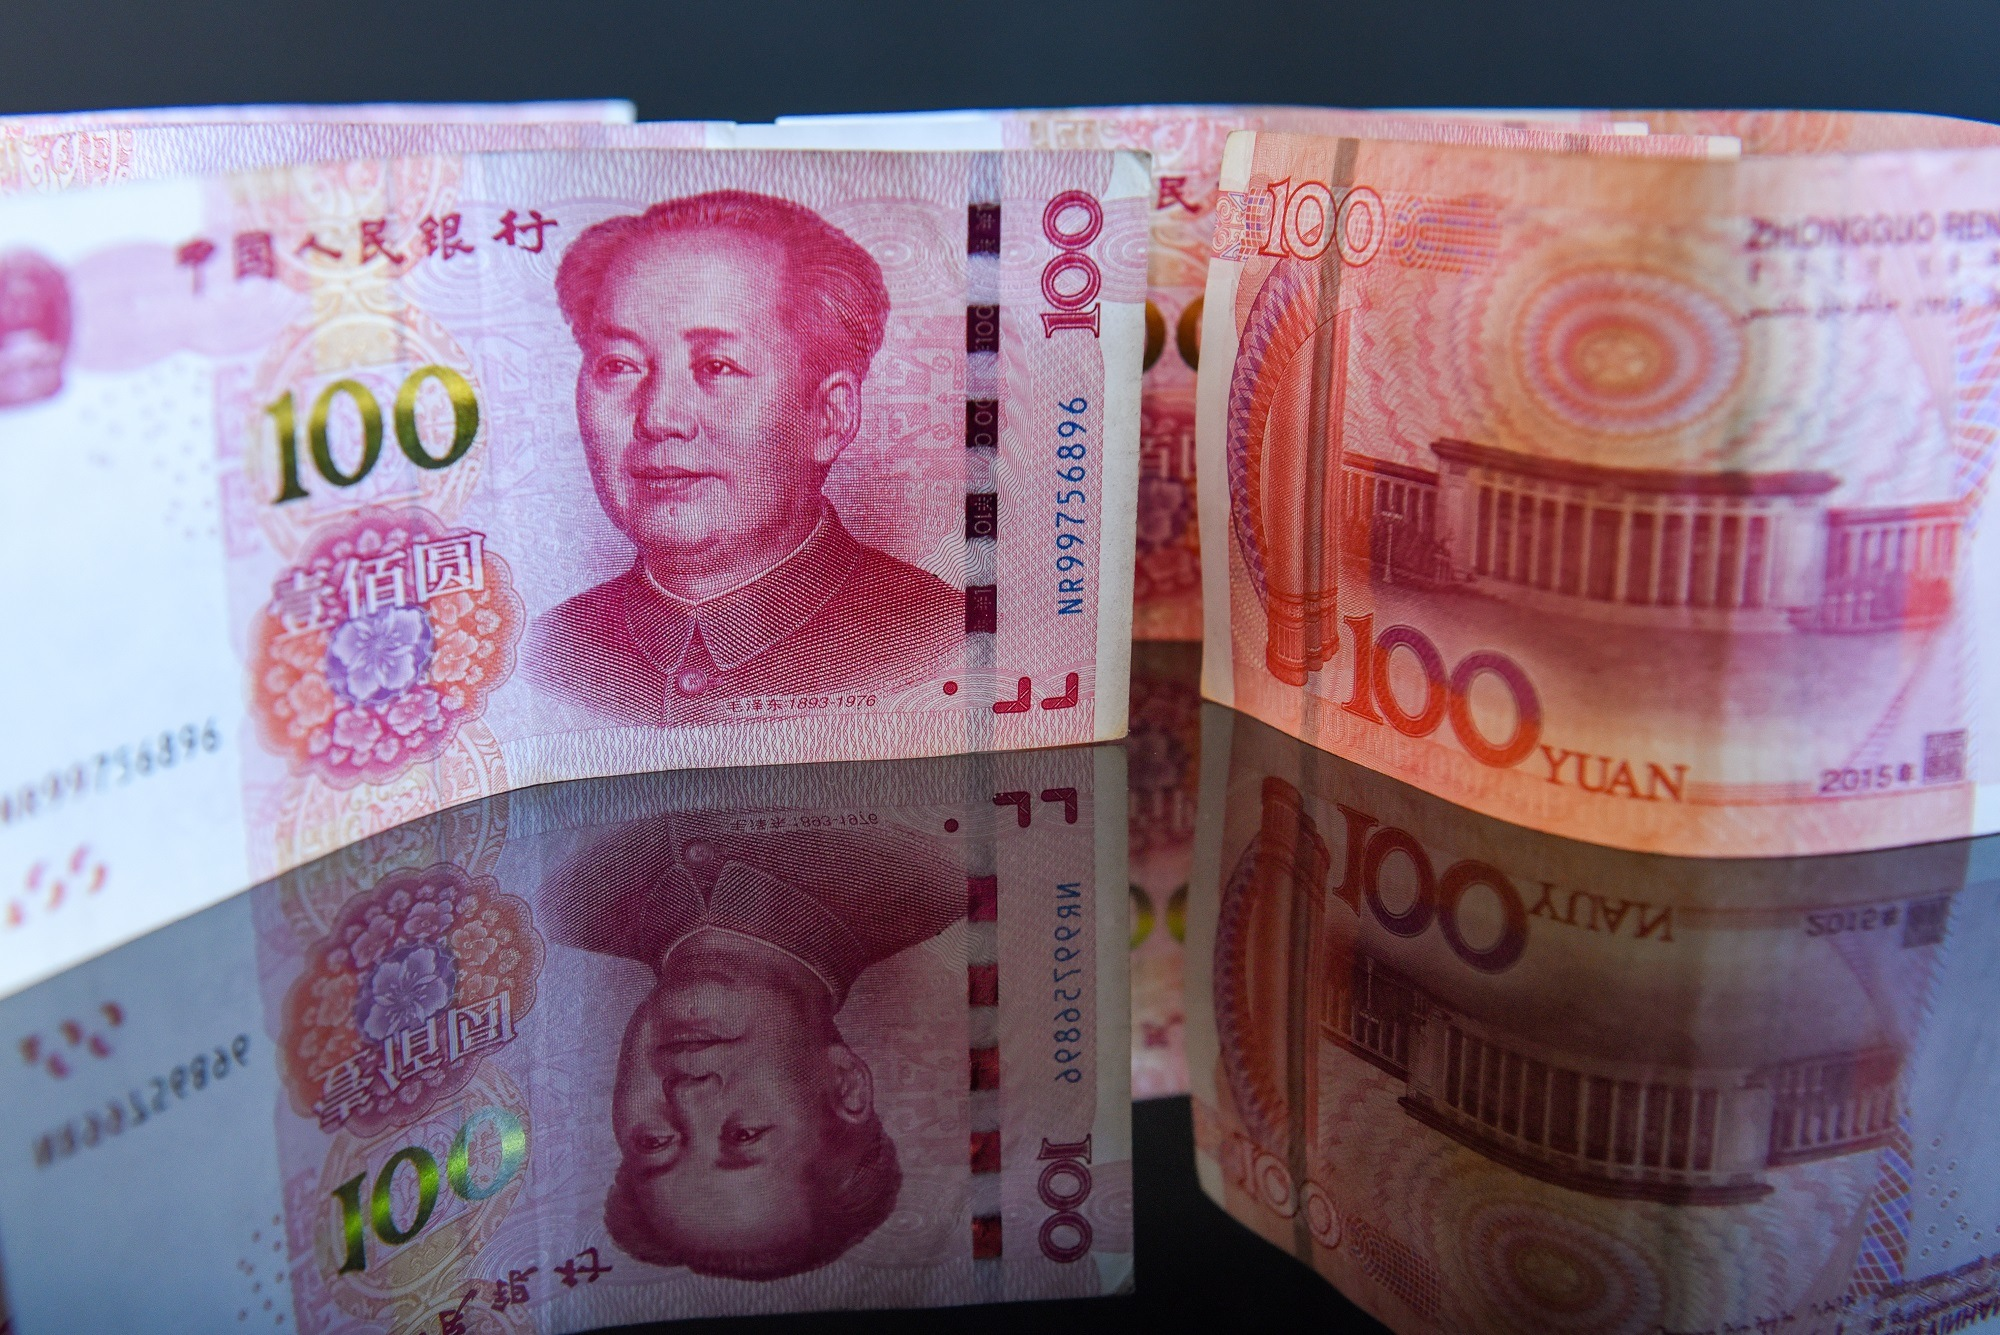 Indoor shoot of Chinese currency - Yuan. No people on the pictures, just different arrangements of the bill of 100 (one hundred) yuan placed on a reflective surface. Good for illustration of tariffs negotiations between China and USA